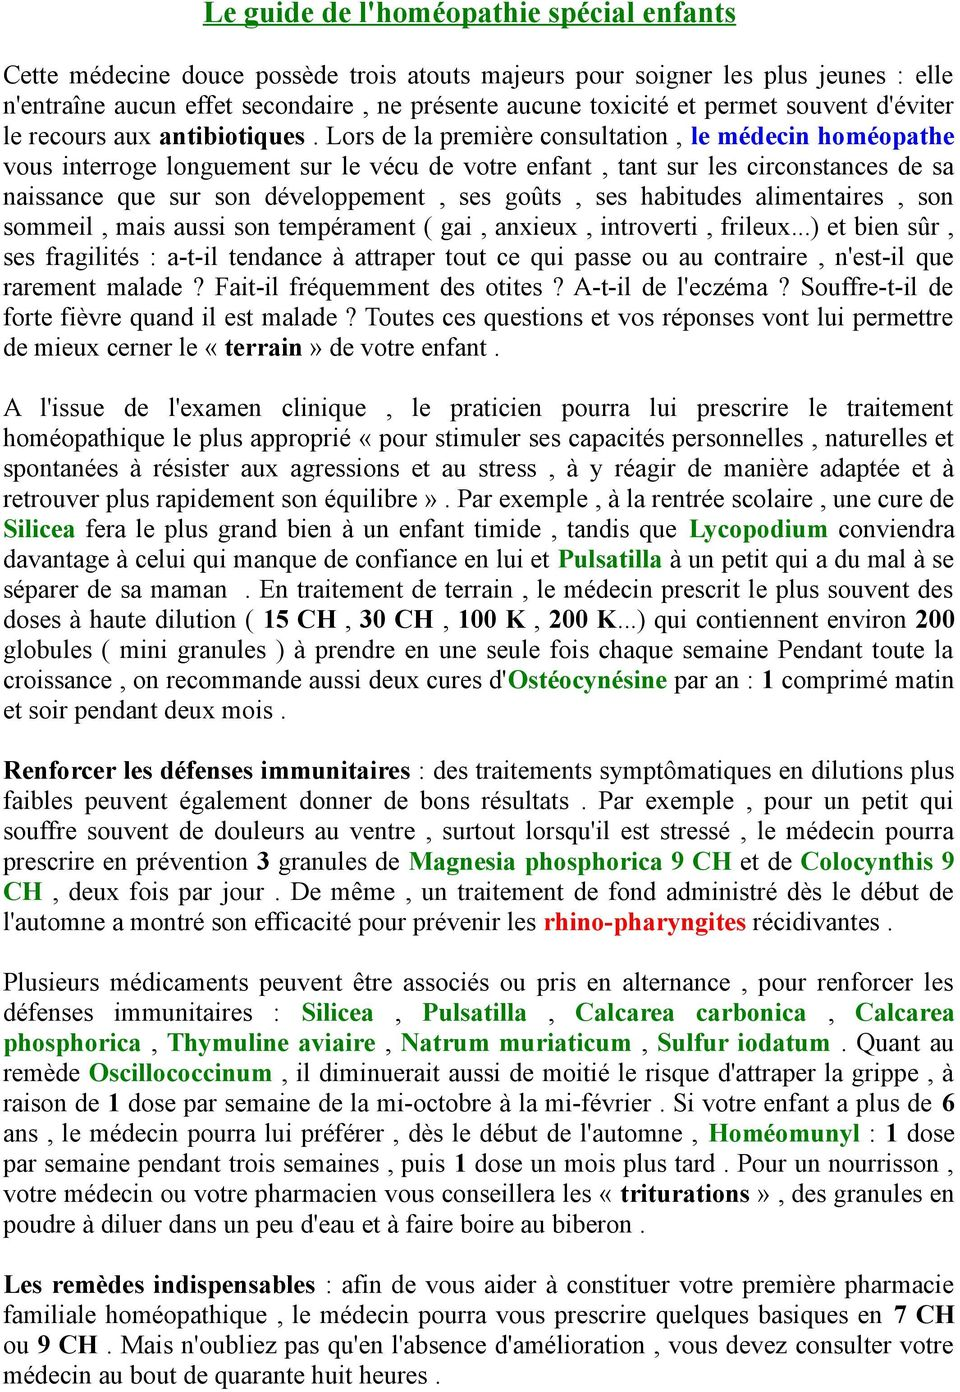 Synonyms and antonyms of allergique in the French dictionary of synonyms